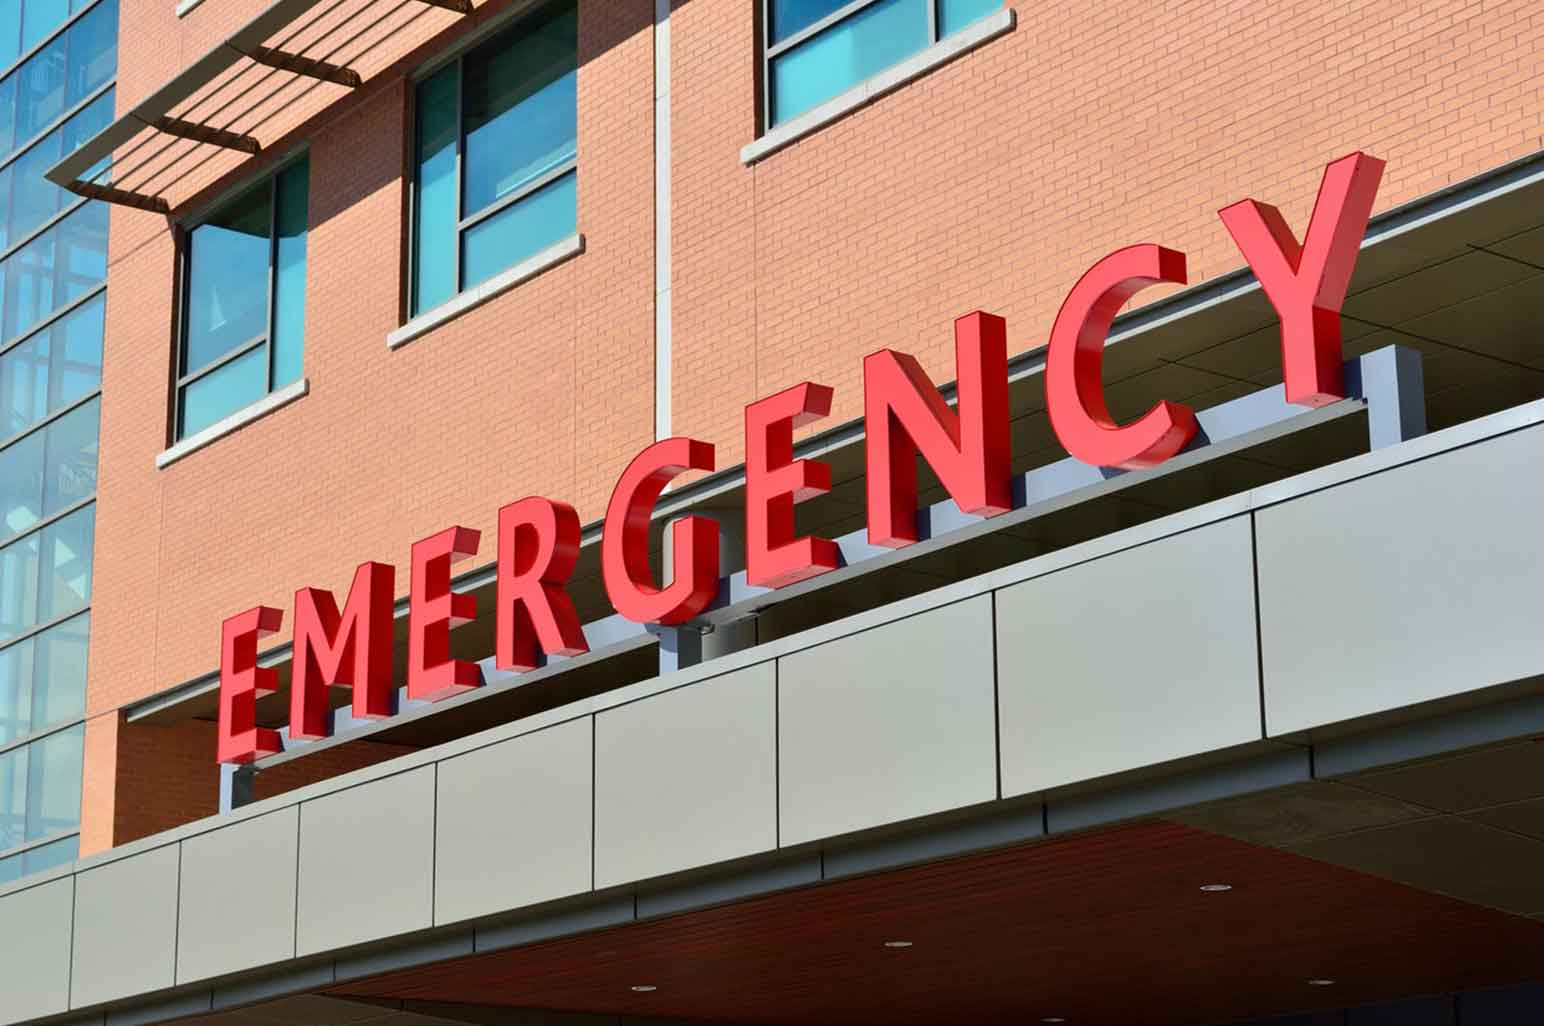 Experienced An Injury While You're Out Traveling? Here Are The Immediate Steps You Need To Take